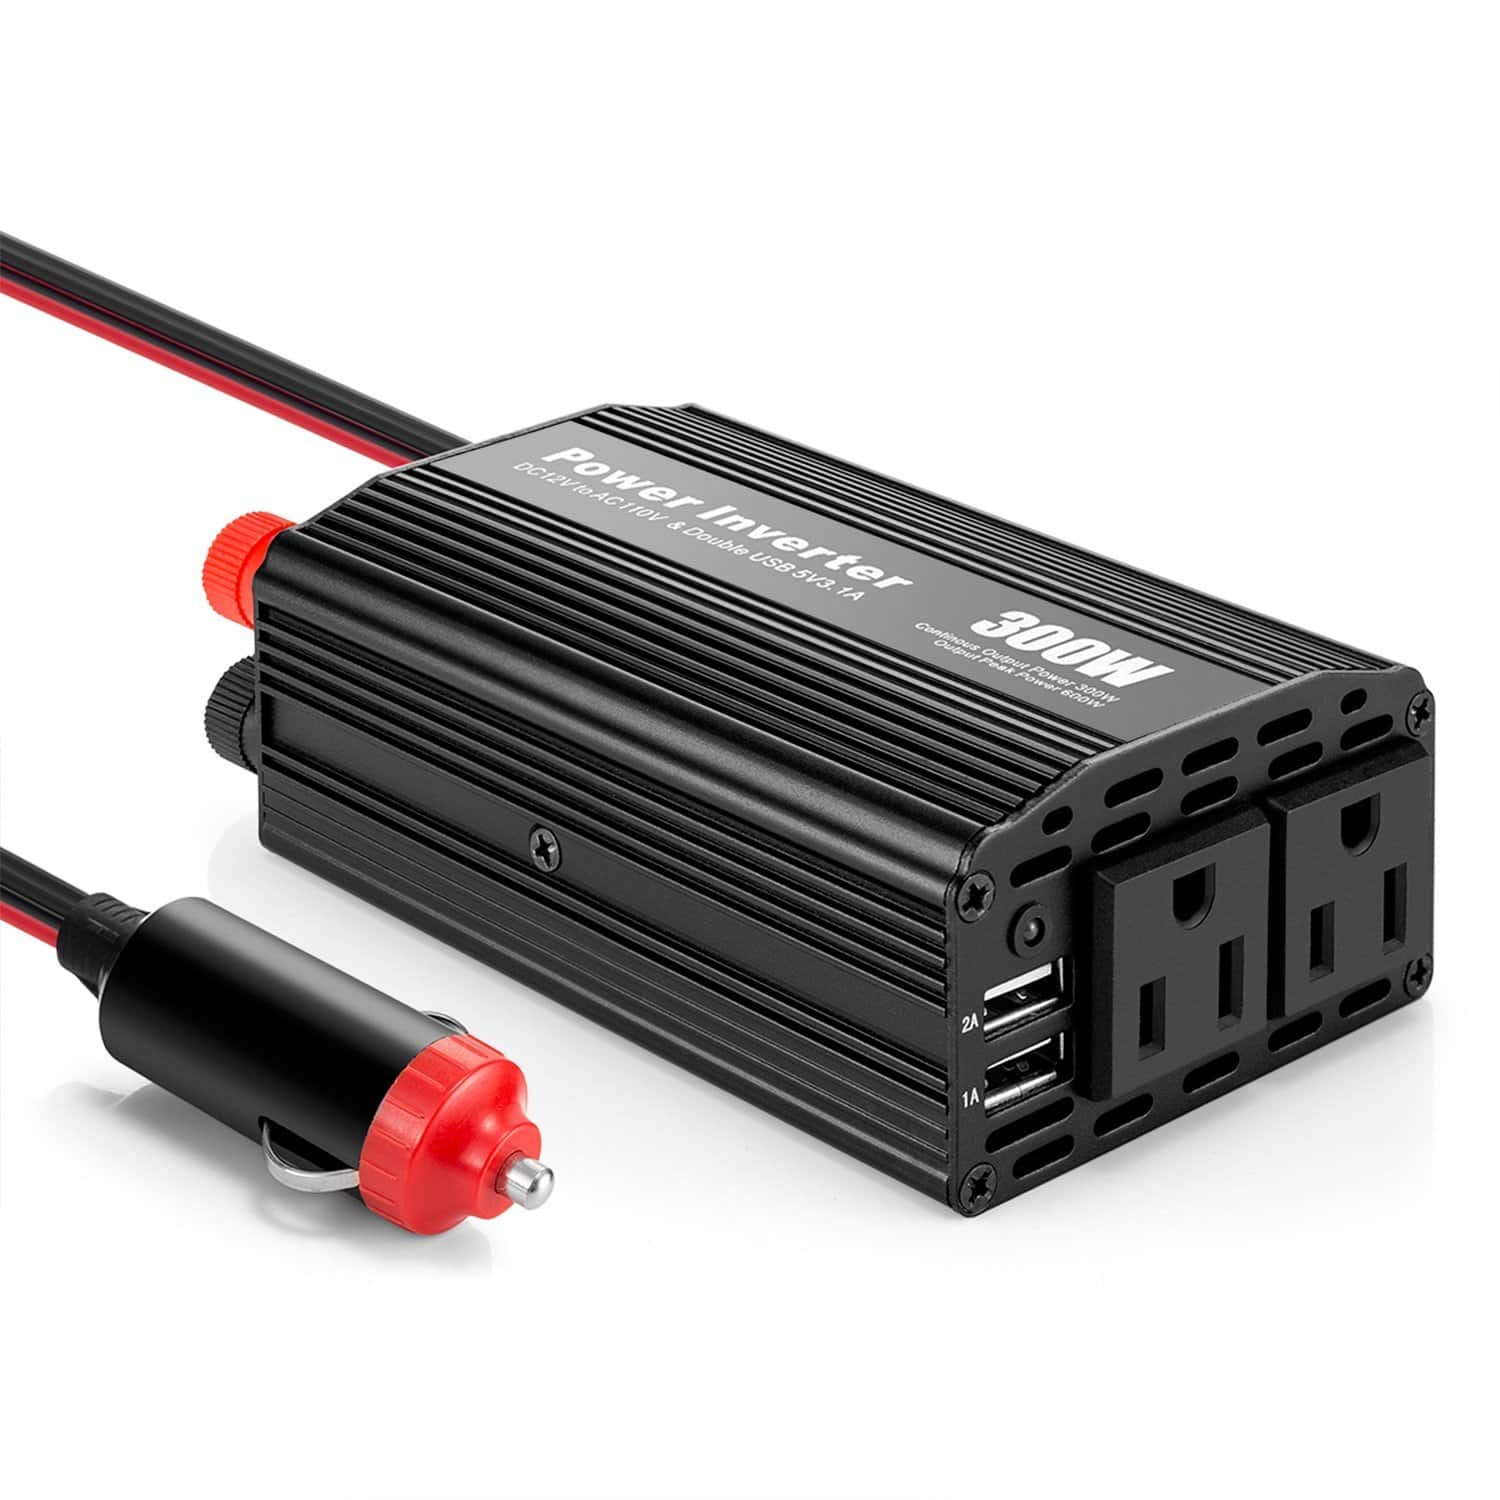 300W Vehicle Power Inverter DC 12V to 110V AC Outlets and Car Inverter with 3.1A Dual USB Adapter $15.33